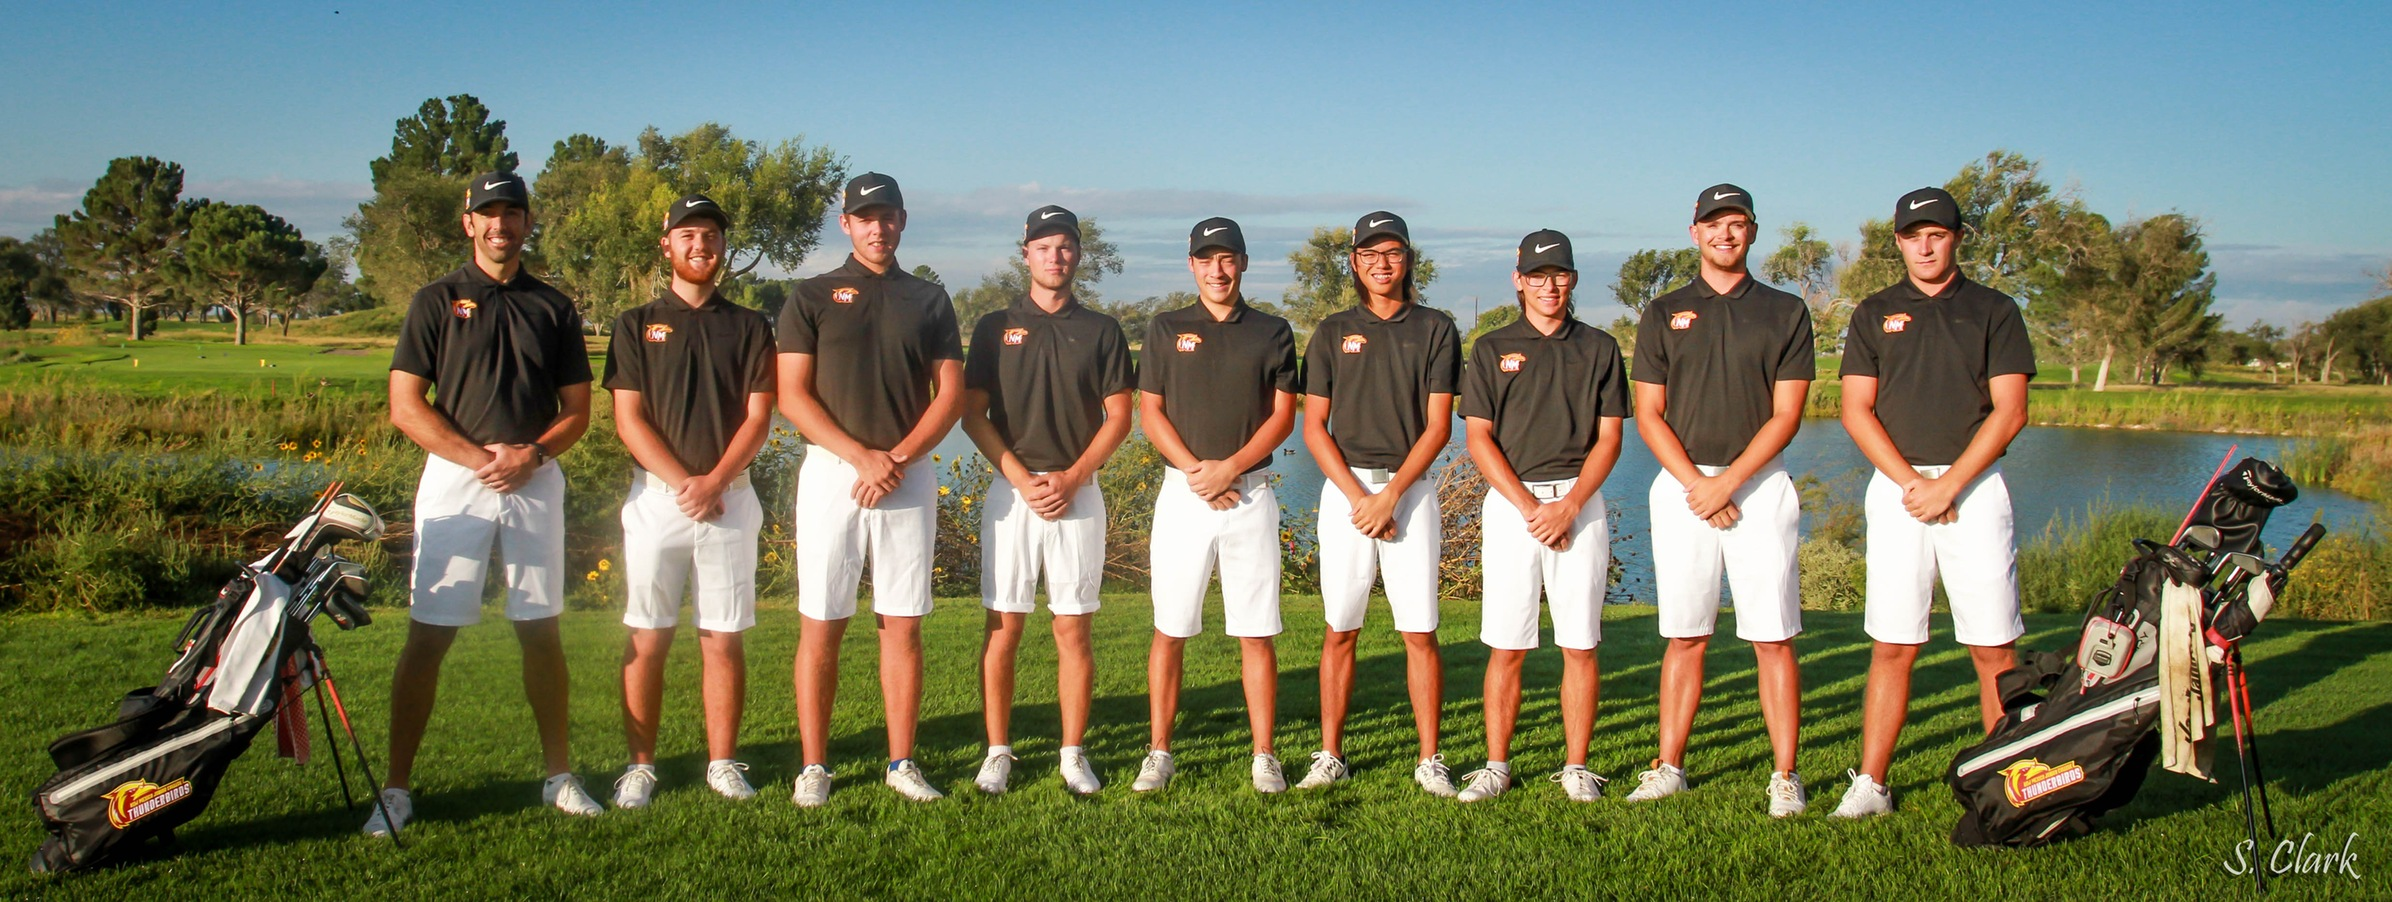 NMJC's Kreutzer tied for first at tourney